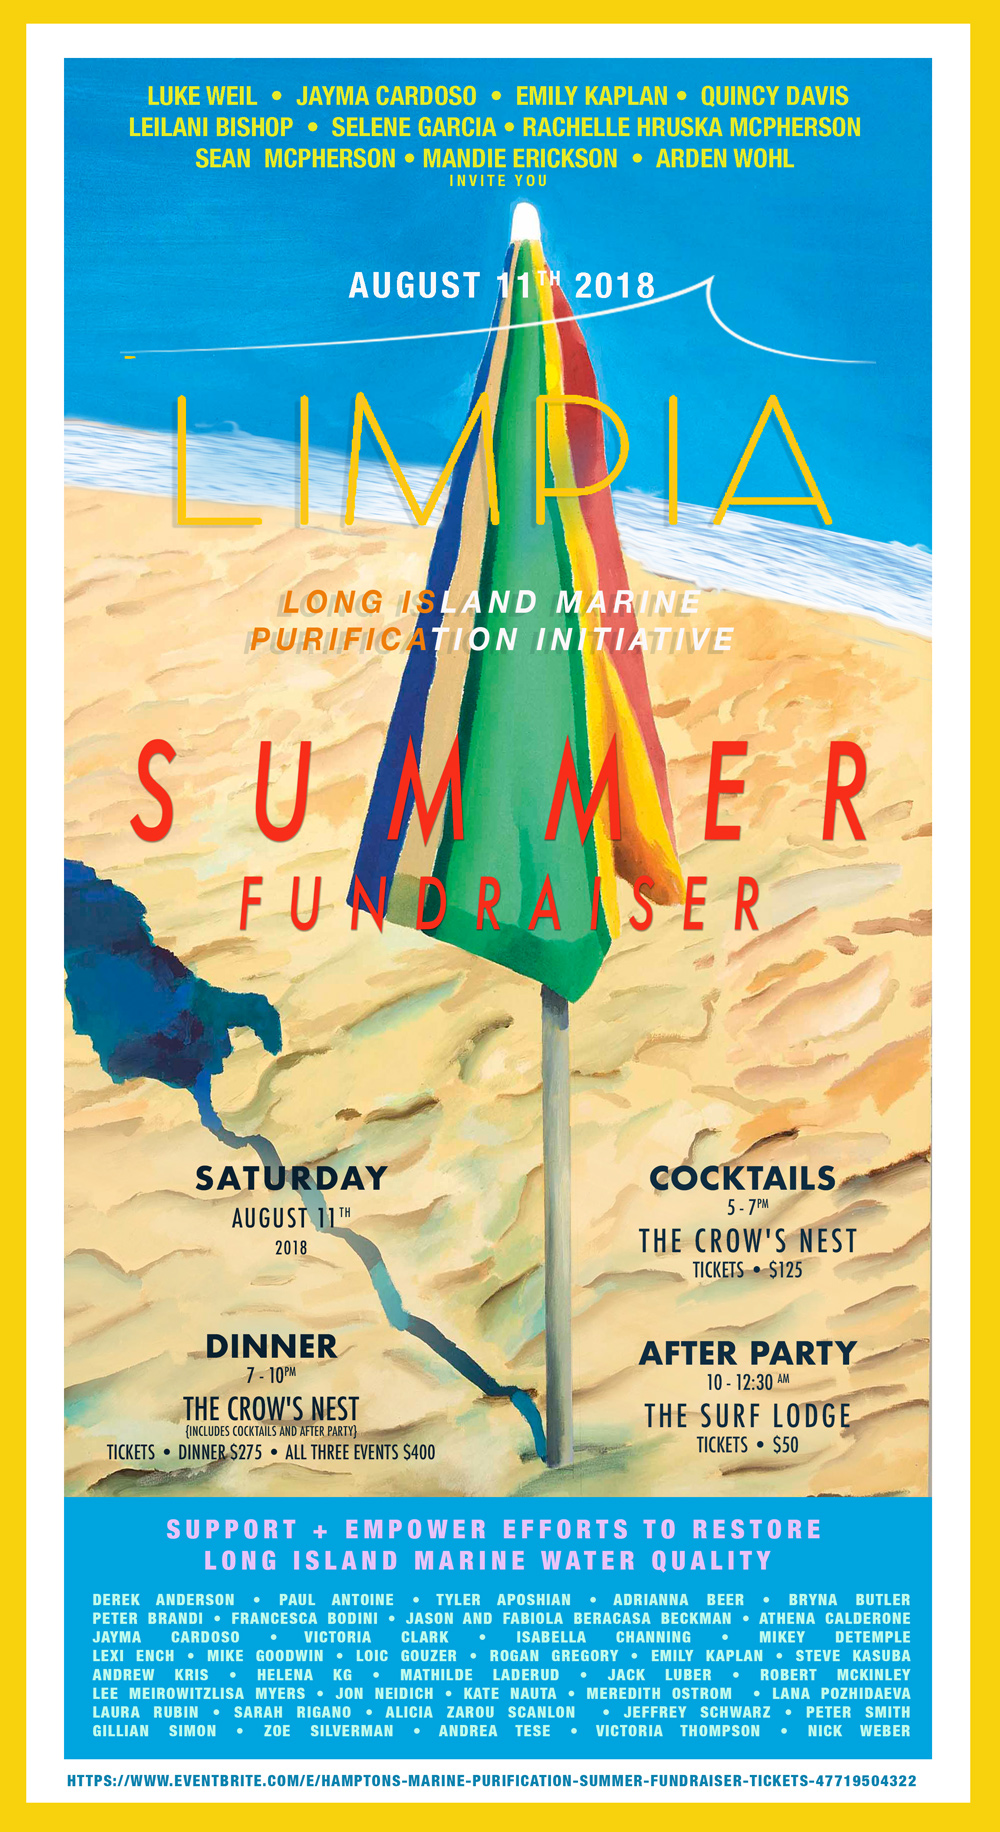 limpia-invitation-official.jpg